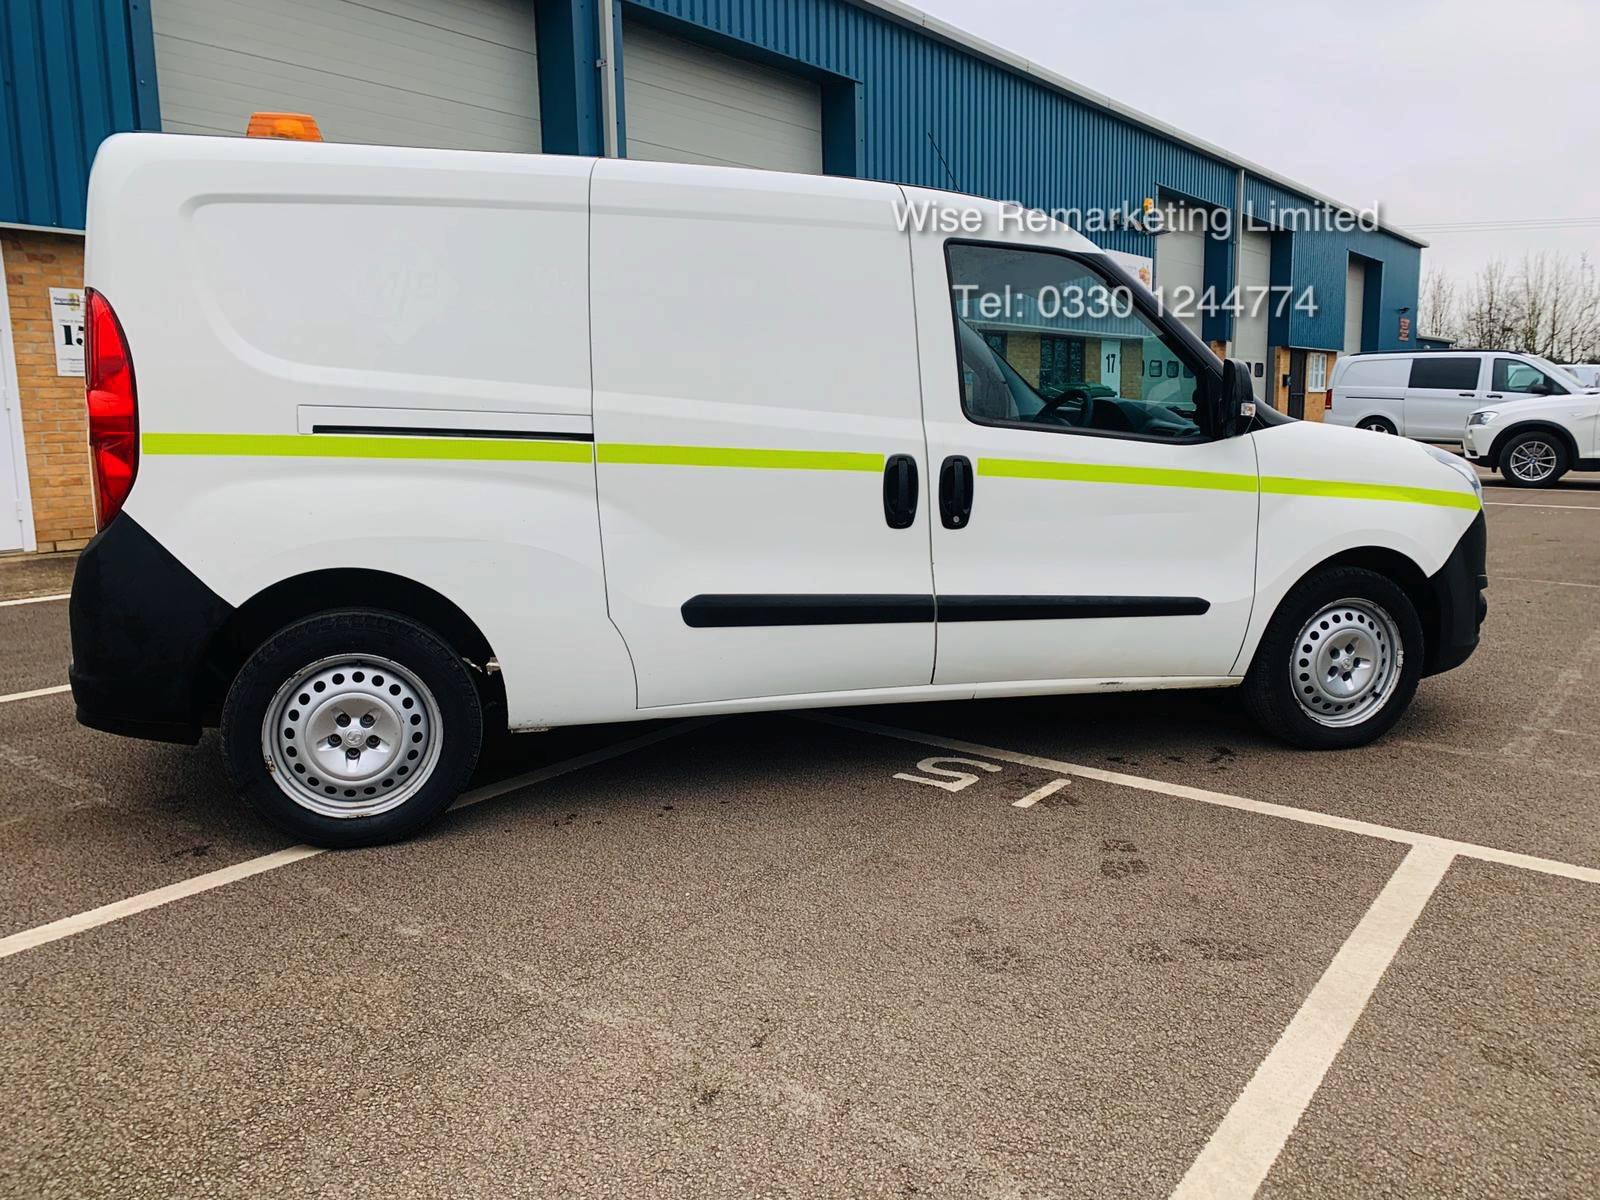 Vauxhall Combo 2300 1.6 CDTI Long - 2016 Model - 1 Keeper From New - Twin Doors - Ply Lined - Image 3 of 21